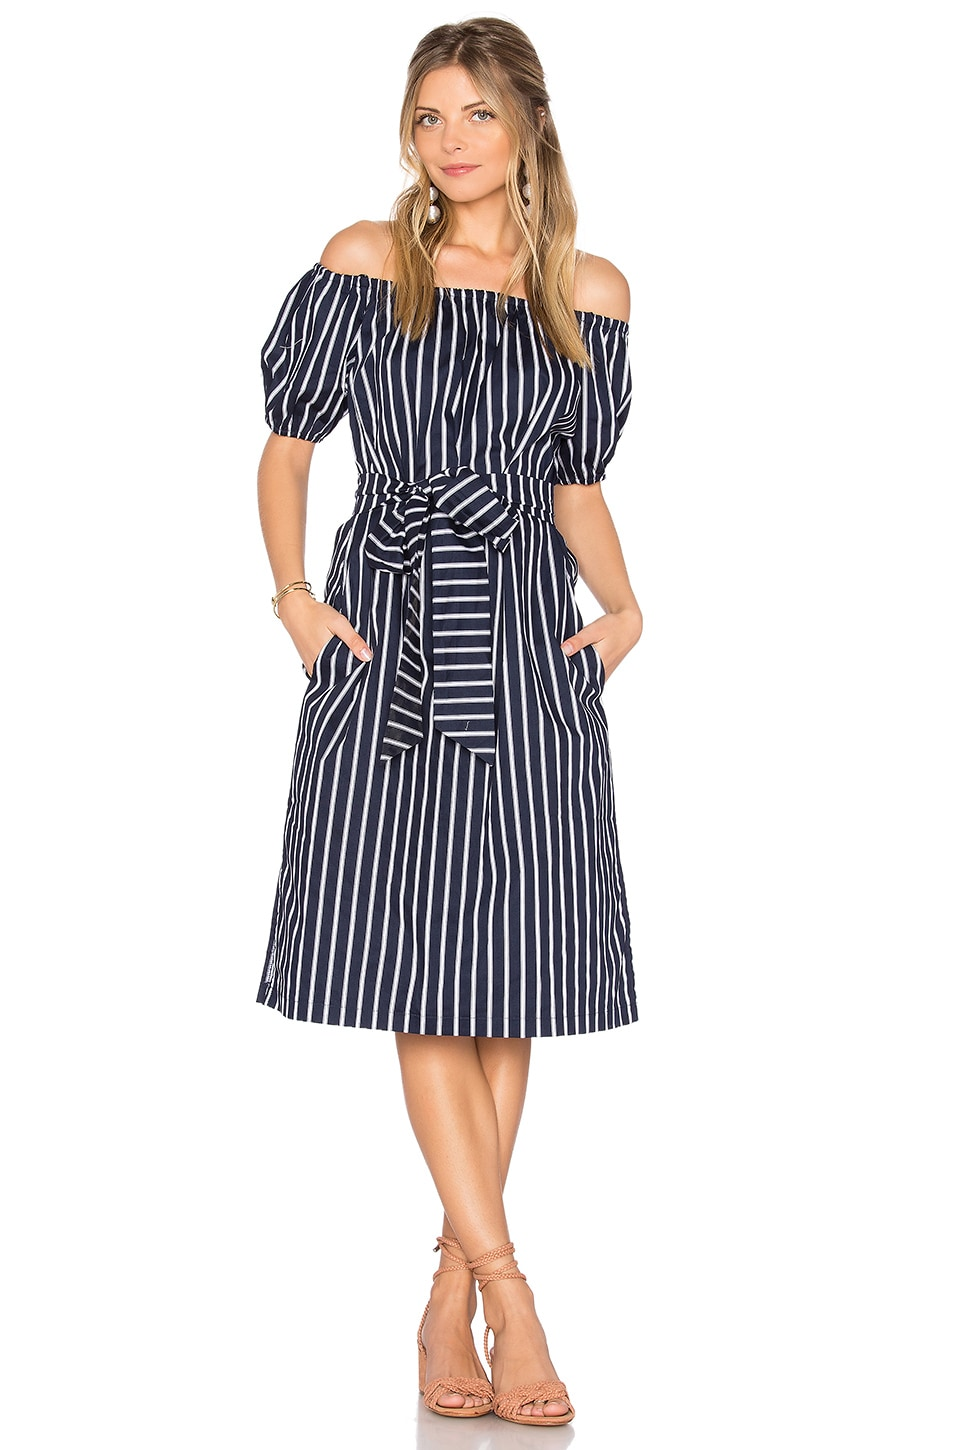 J.O.A. Stripe Off The Shoulder Dress in Navy Multi